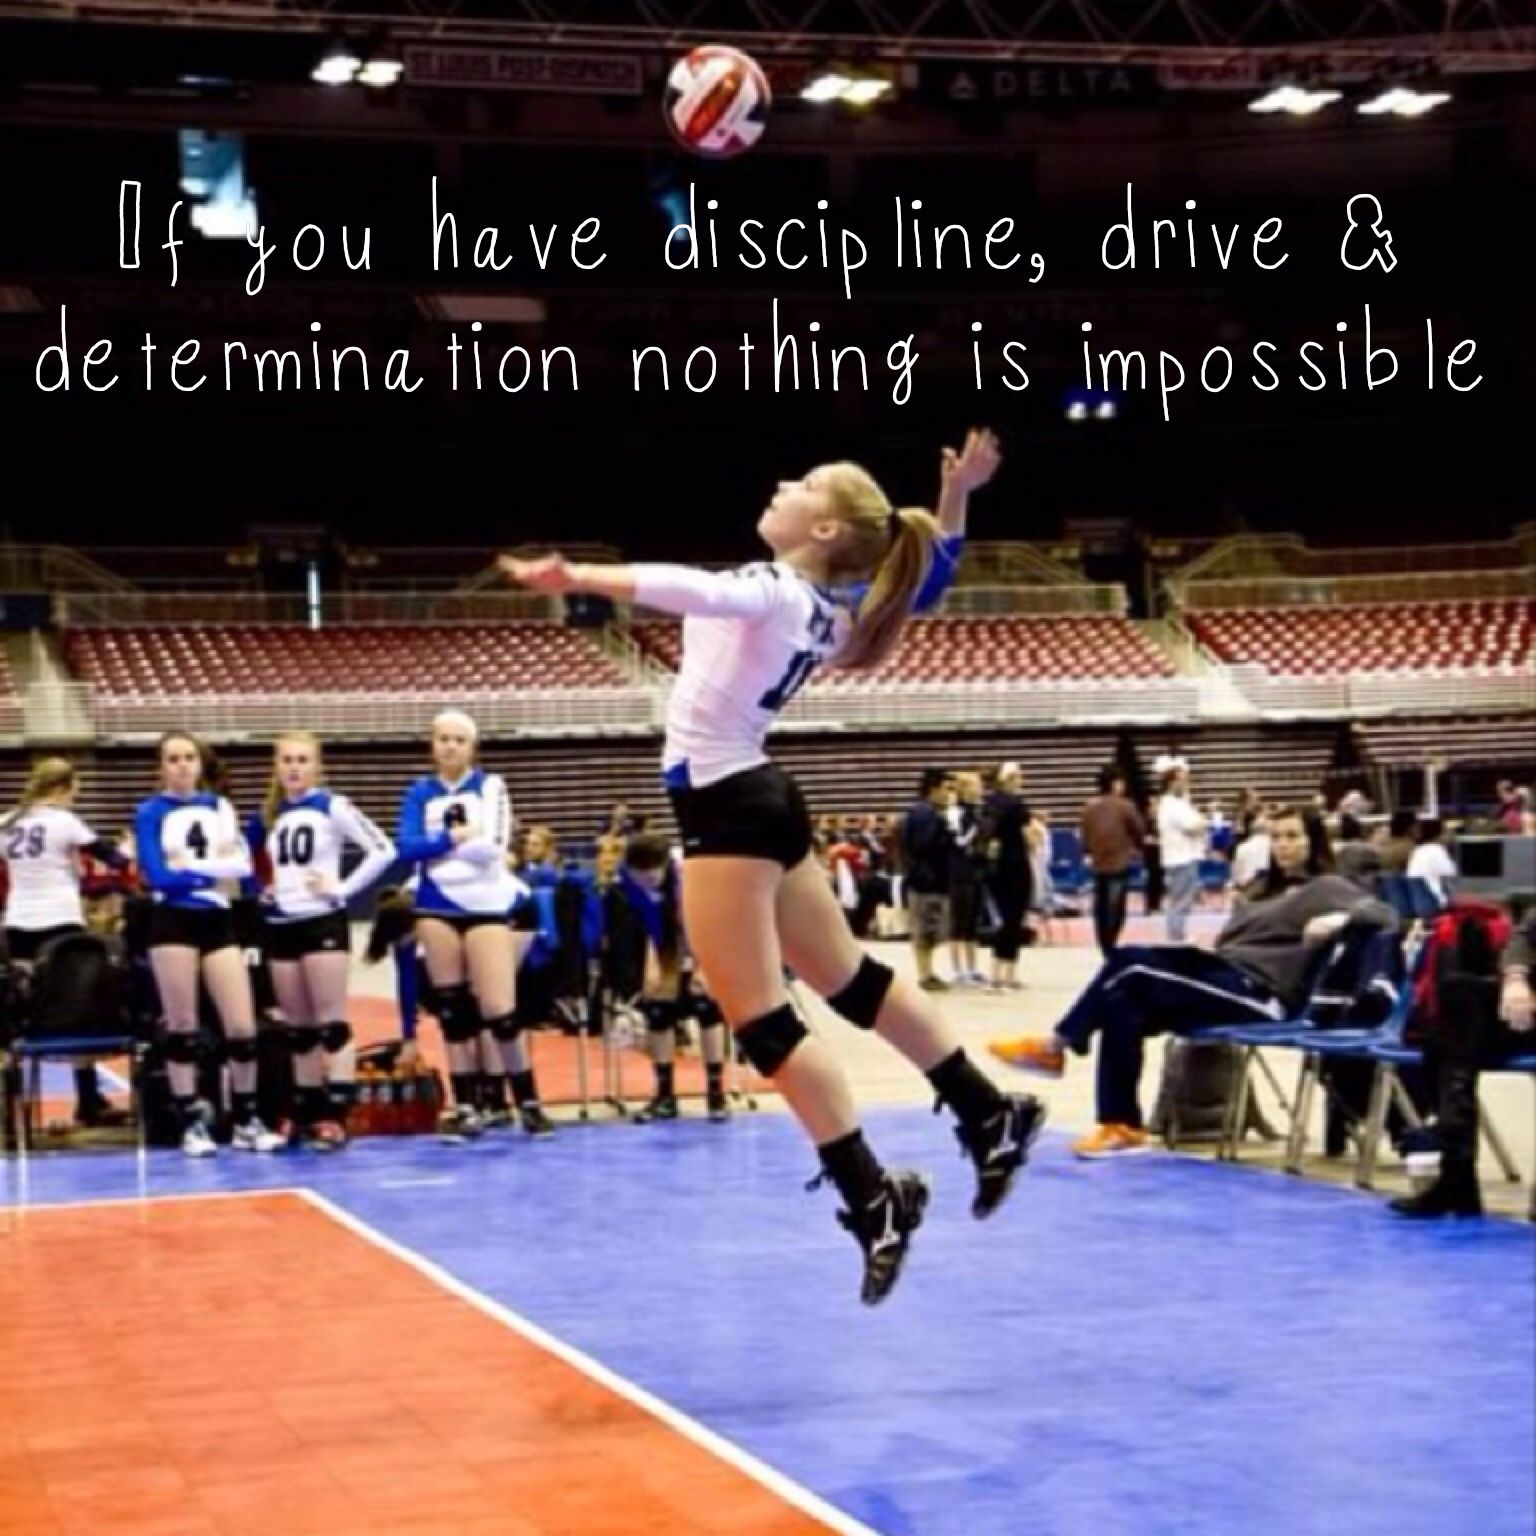 Discipline Drive Determination Volleyball Mybaby Voley Ropa Deportiva Mujer Deportes